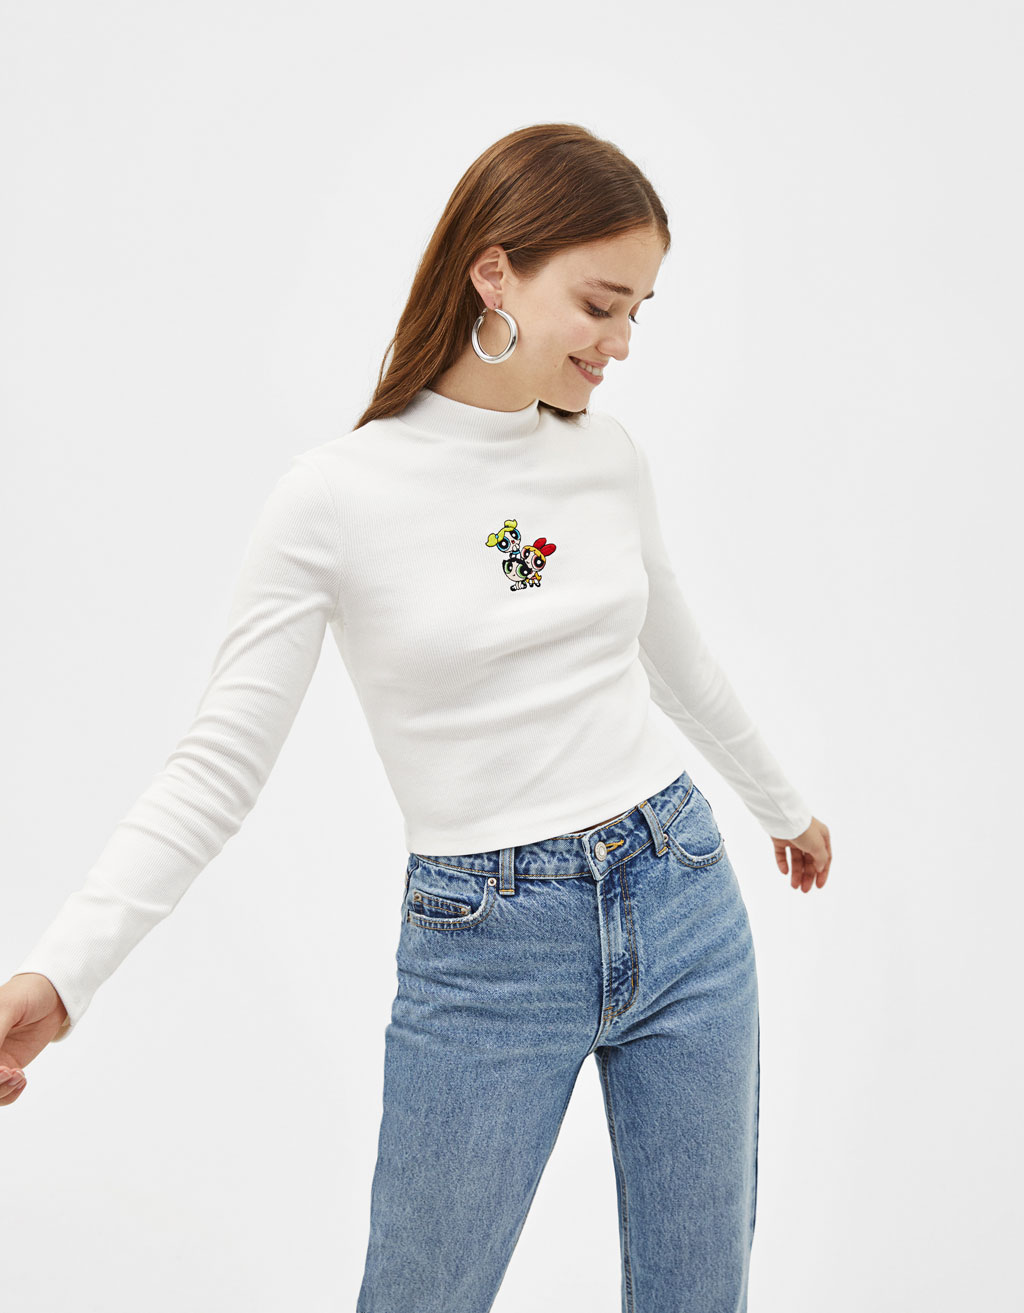 Sweater with Powerpuff Girls embroidery